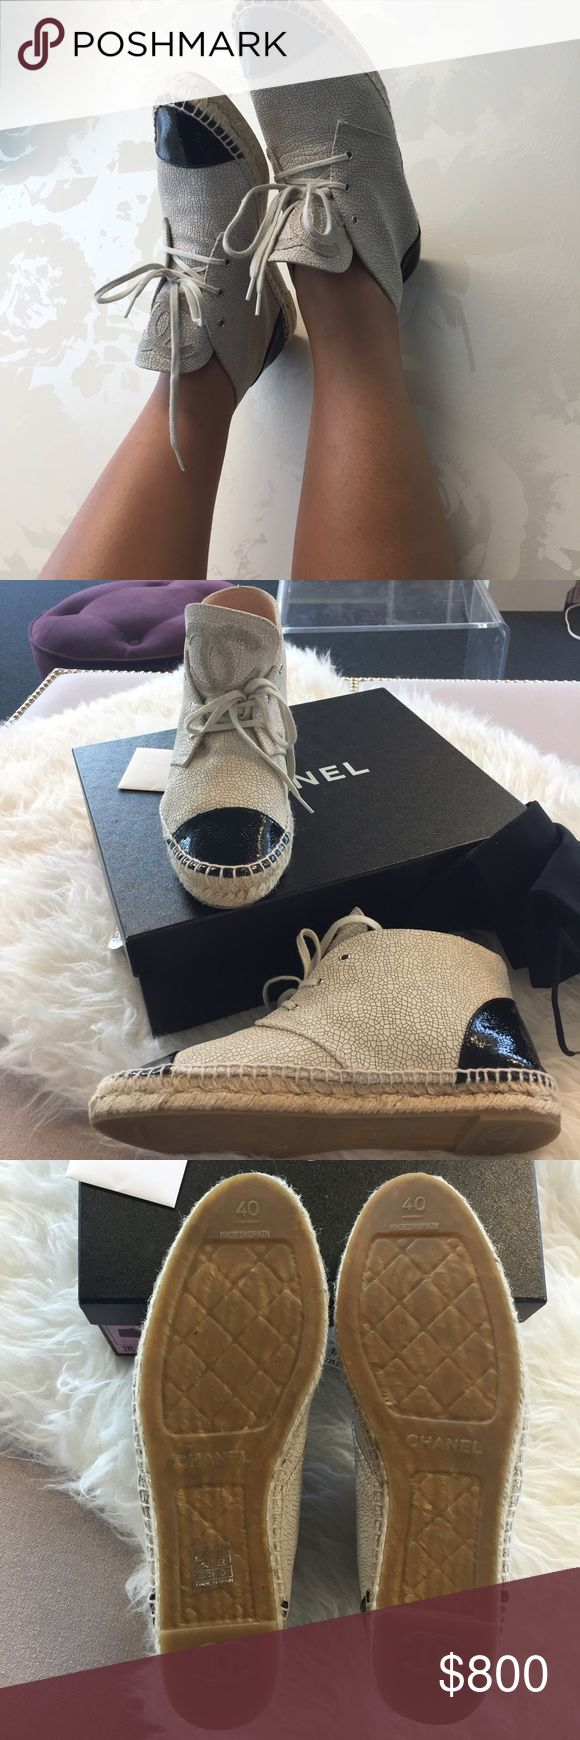 SALE!!! Chanel High Top Espadrilles (size 40) Chanel High Top Crackled Leather Espadrilles; Light Beige; Size 40. Chanel espadrilles notoriously run small so these would fit an 8.5-9. Will come with dust bags and box. 100% Authentic (don't sell fakes! Respect the designers!) I believe these are no longer sold in stores but feel free to correct me  I've priced them accordingly based on current market value but there's some wiggle room for negotiations.  thanks! CHANEL Shoes Espadrilles